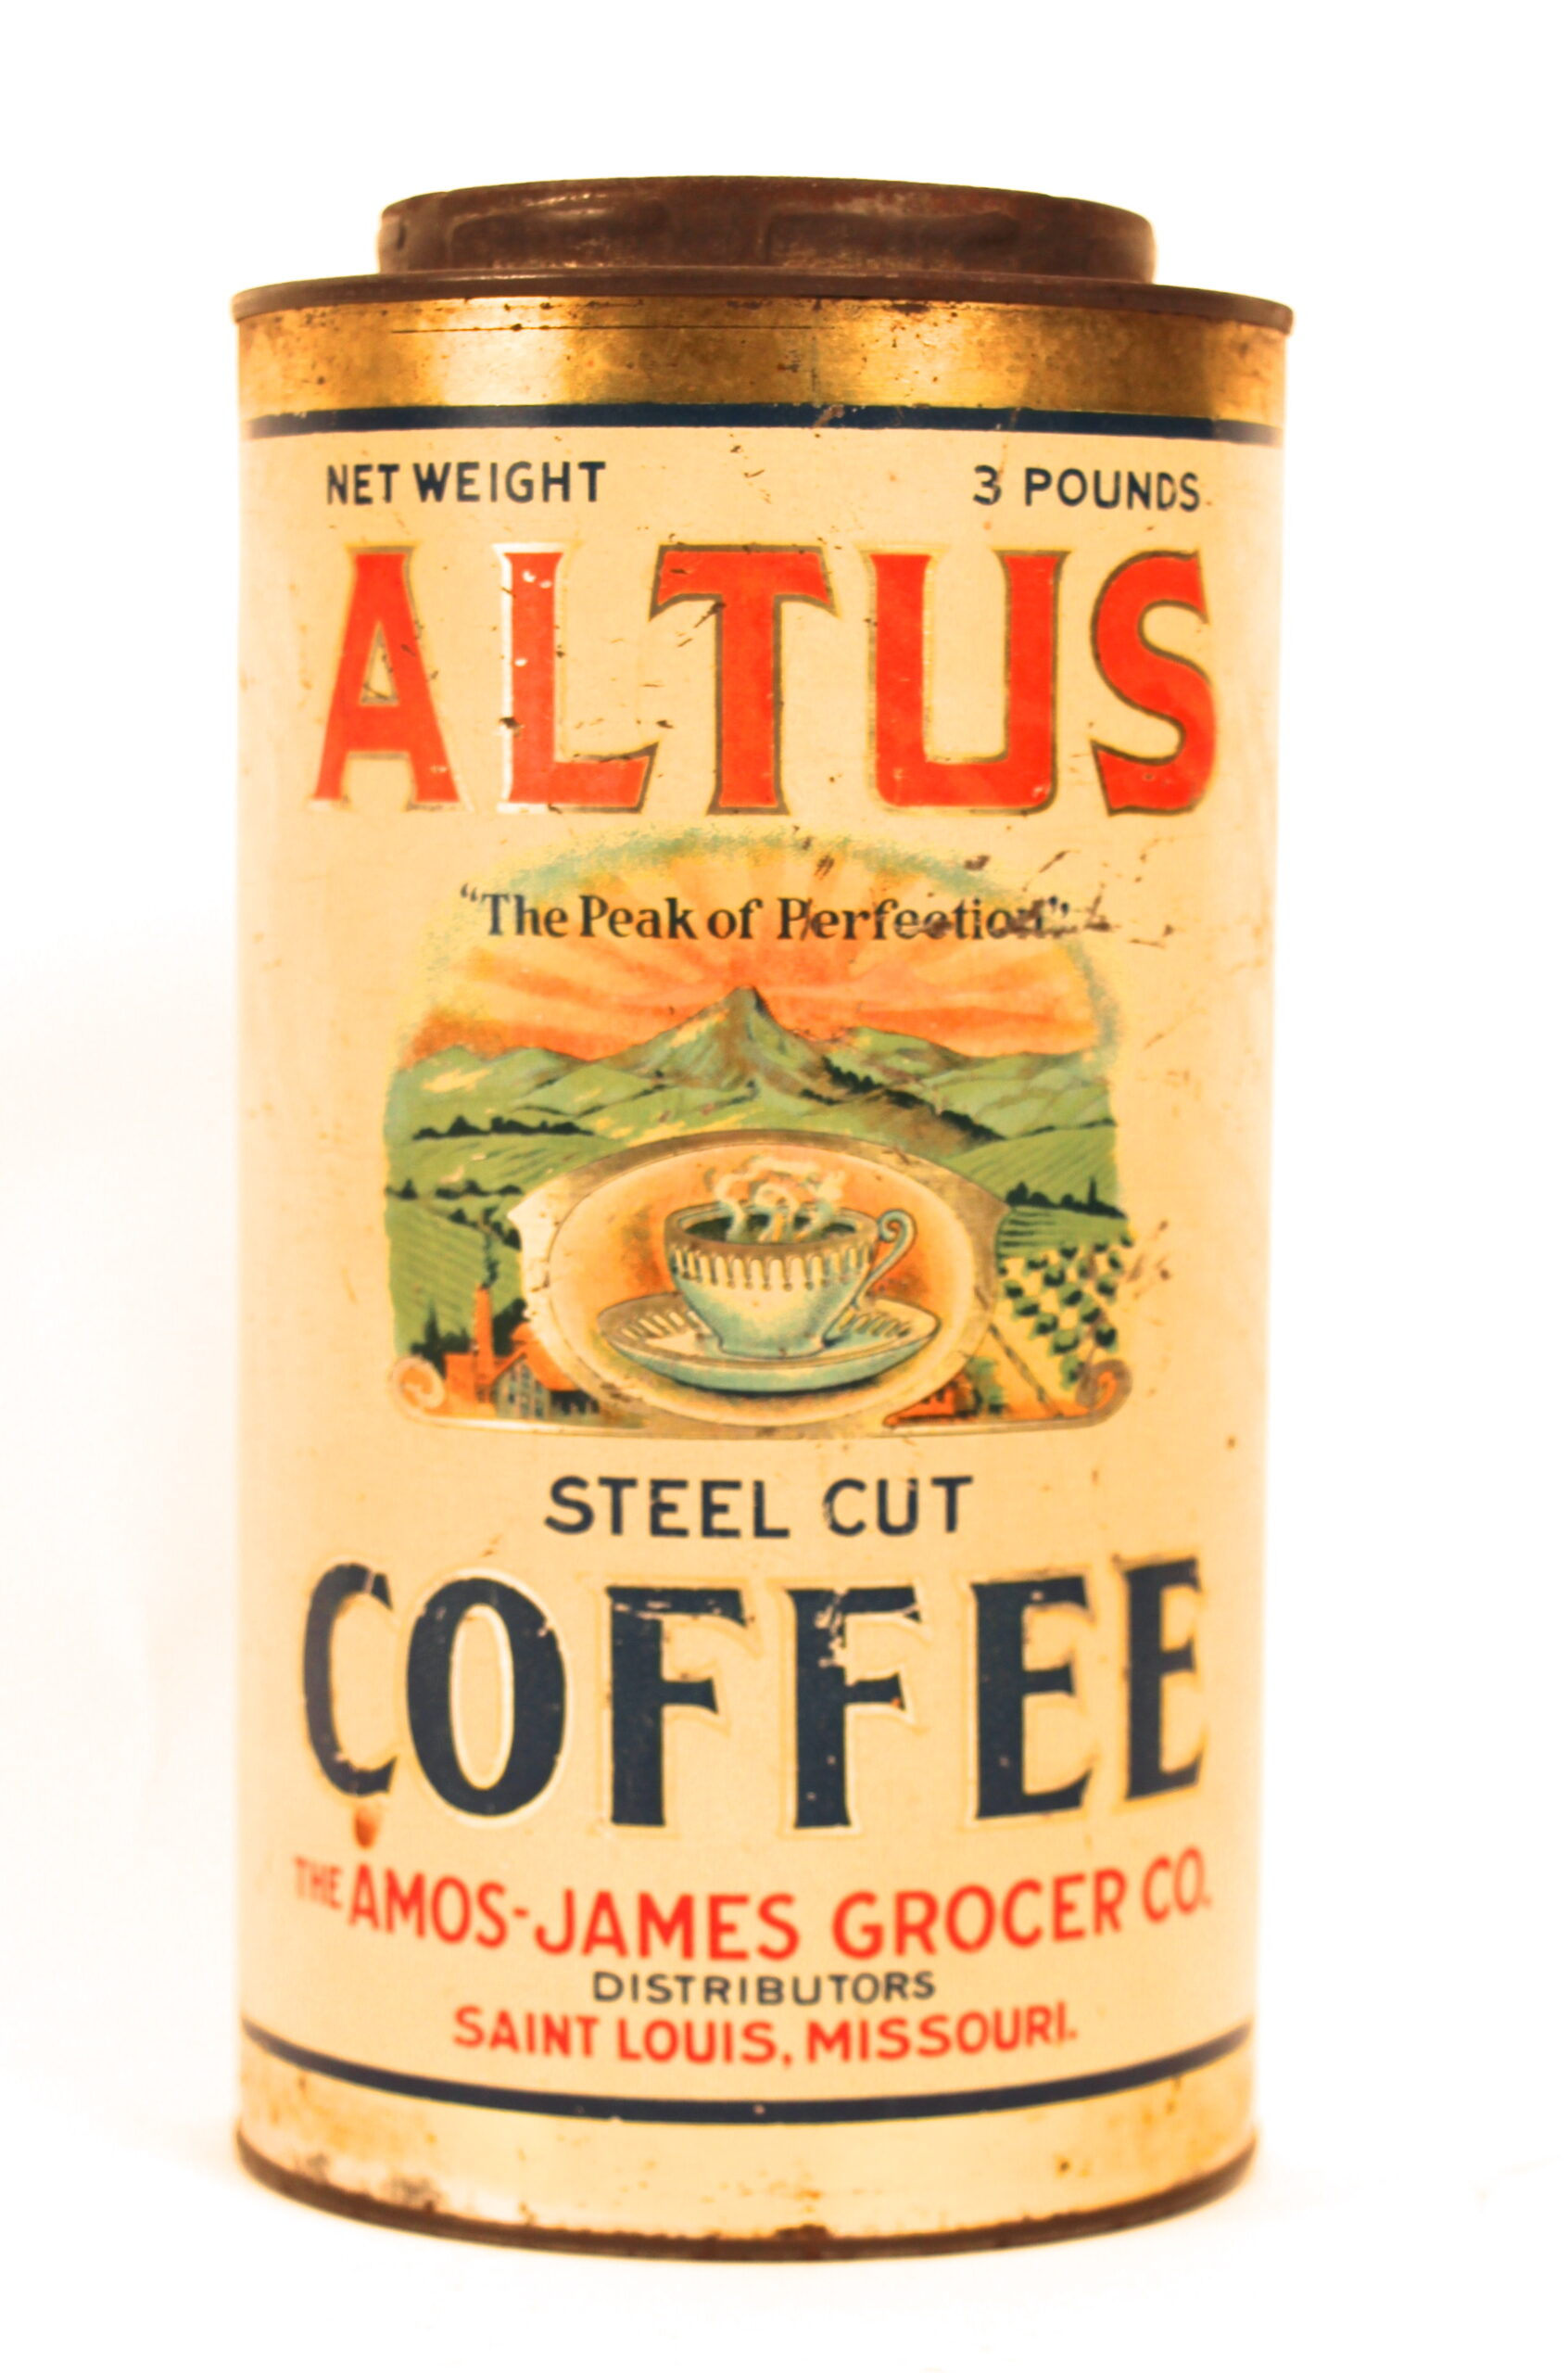 Altus Steel Cut Coffee Tin Can, Amos-James Grocer Co., St. Louis, MO. Circa 1910